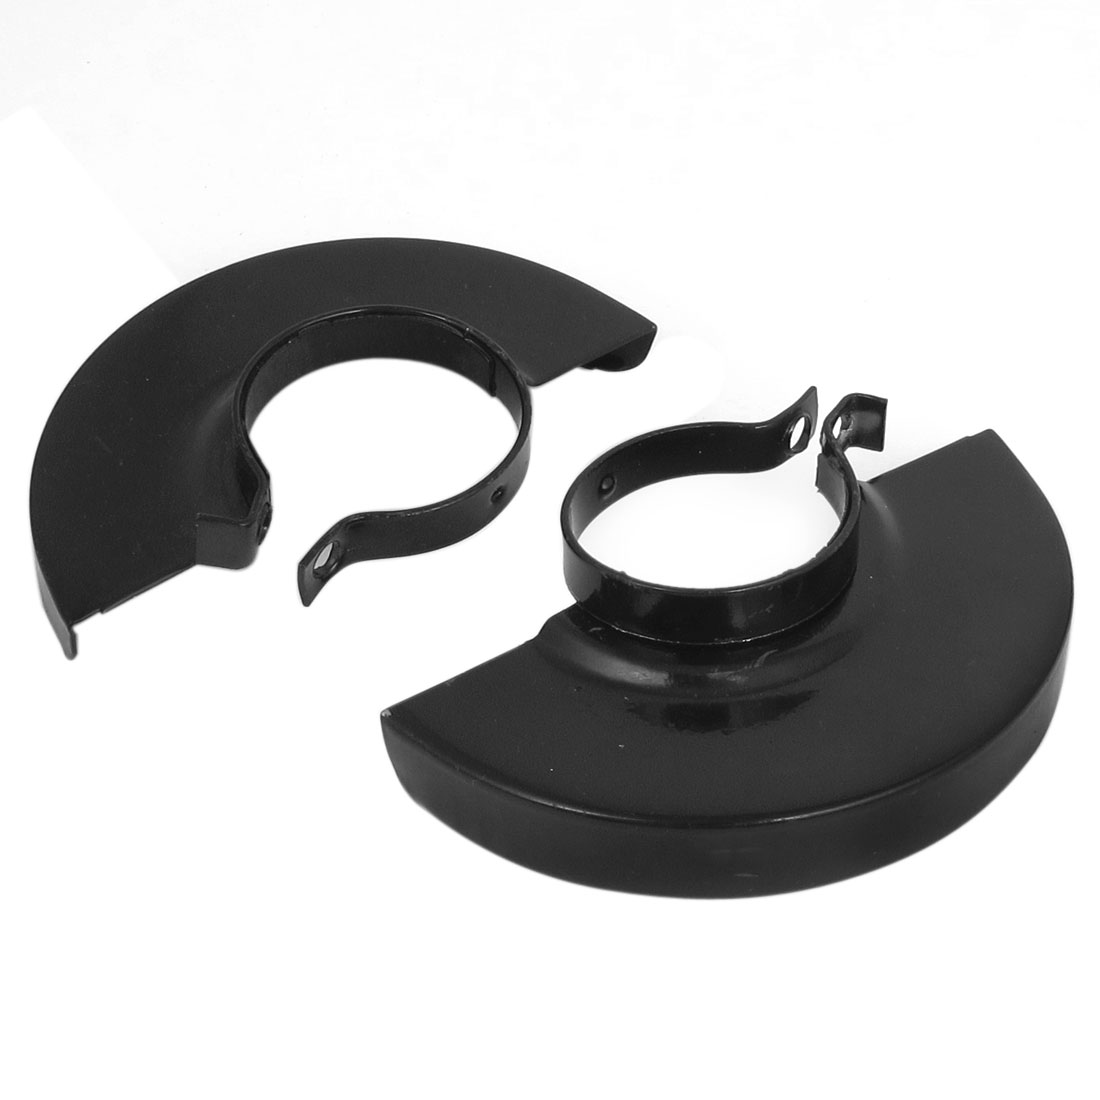 Unique Bargains 2pcs 40mm Inner Diameter Angle Grinder Wheel Metal Cover Guard for Makika HM0810